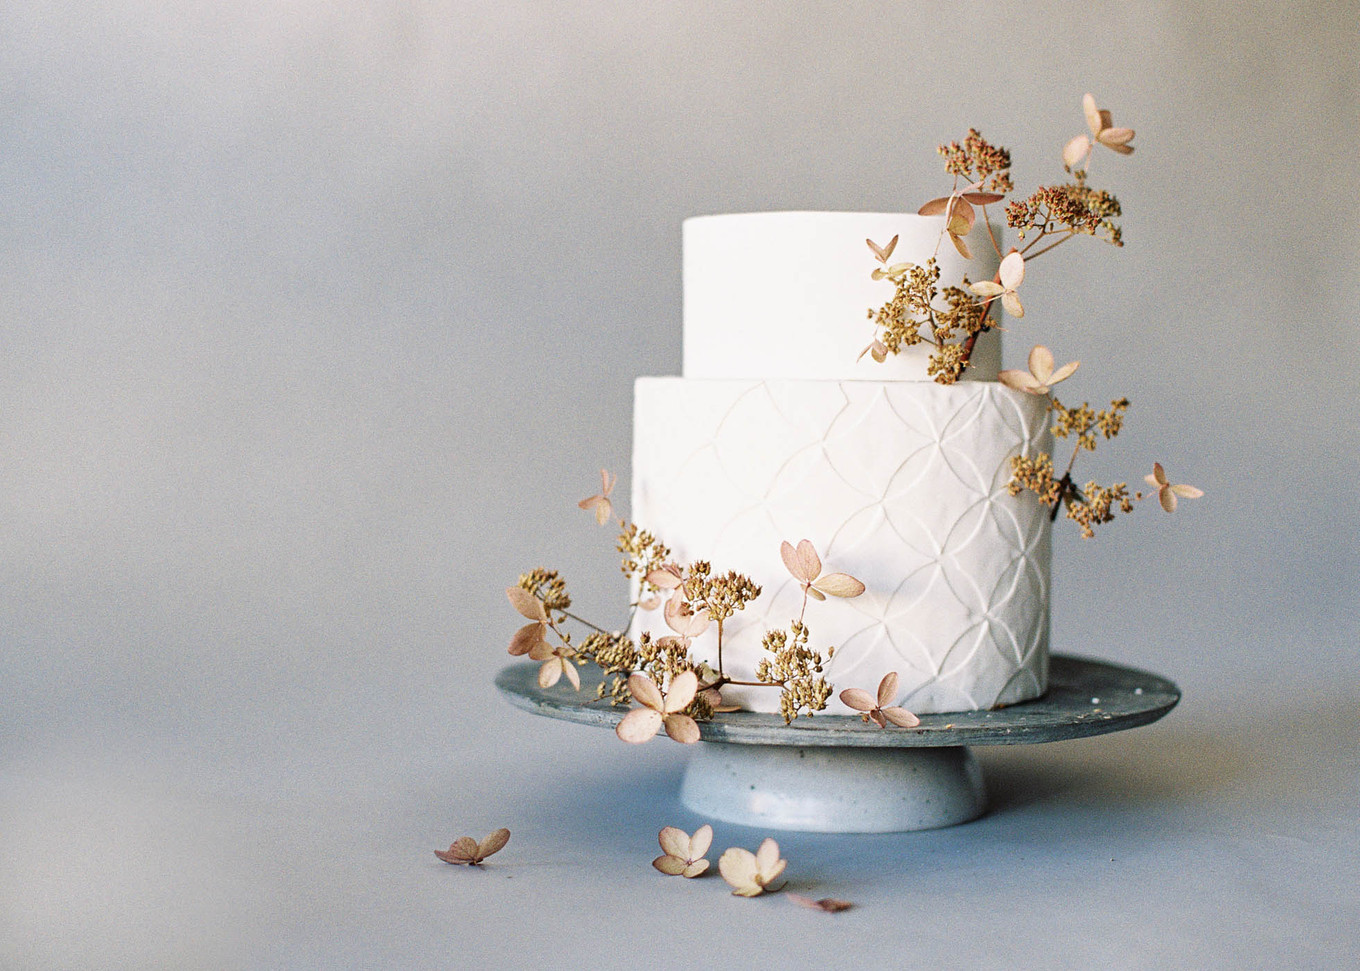 10 Cake Decoration Ideas For A Nature Inspired Wedding